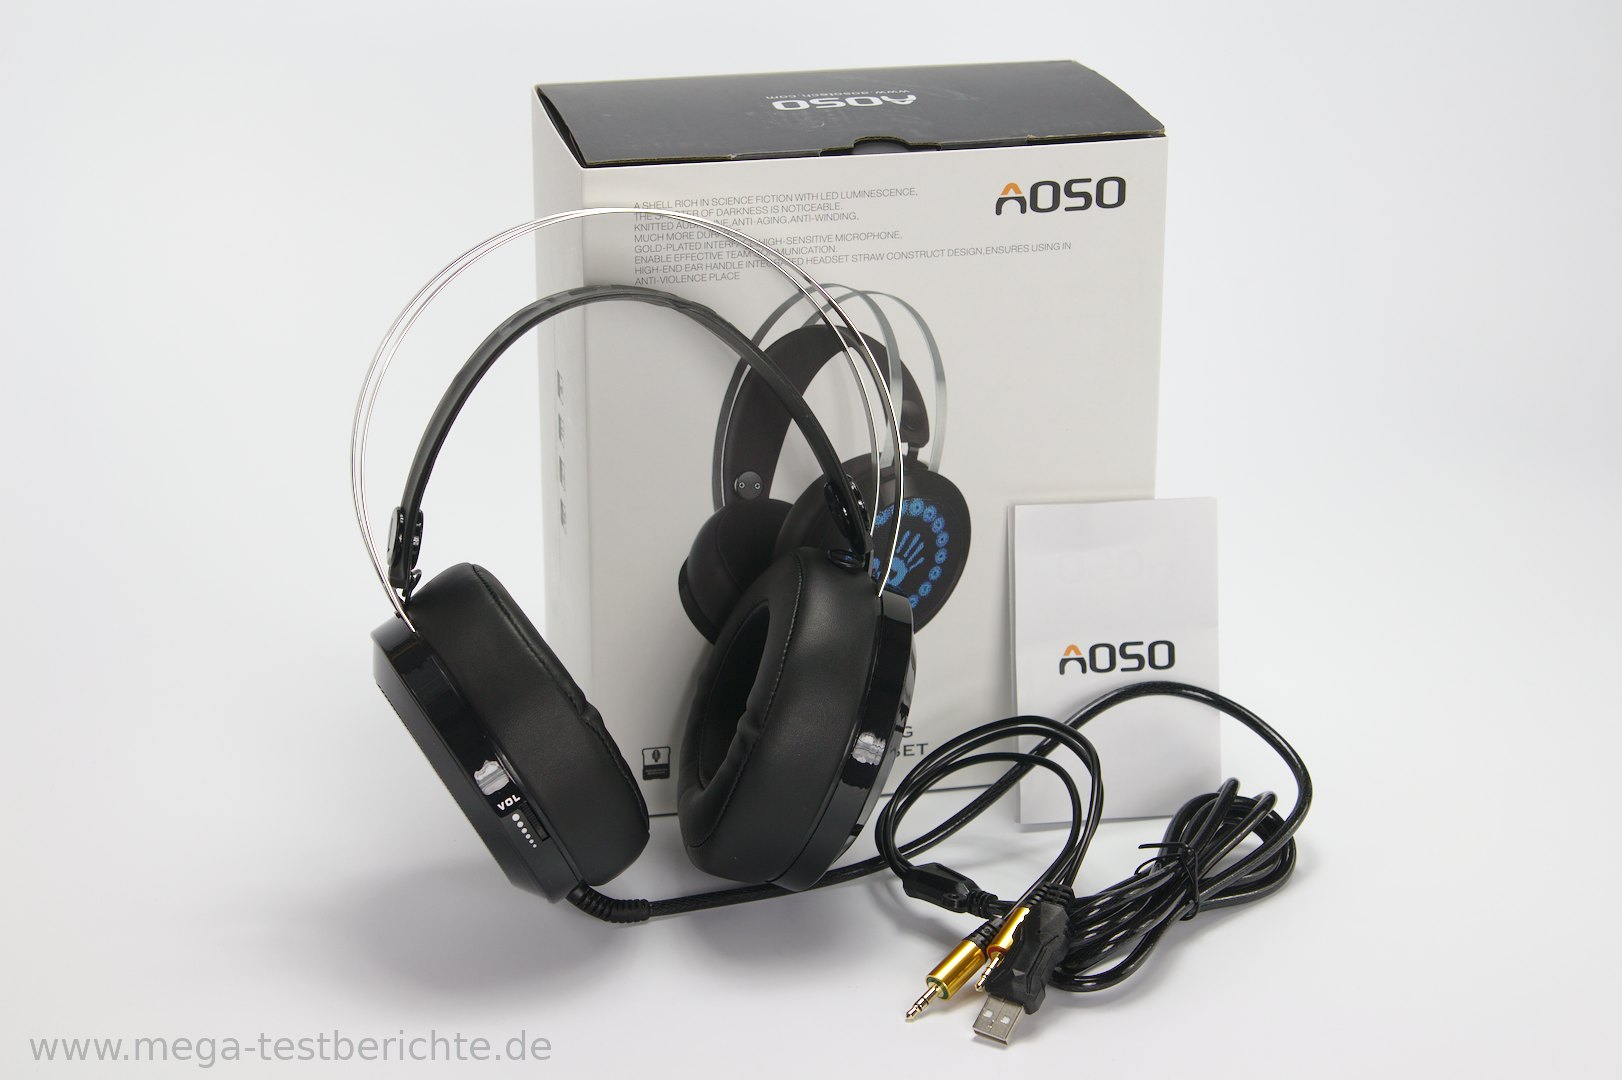 aoso g400 kopfh rer mit mikrofon gamer headset. Black Bedroom Furniture Sets. Home Design Ideas